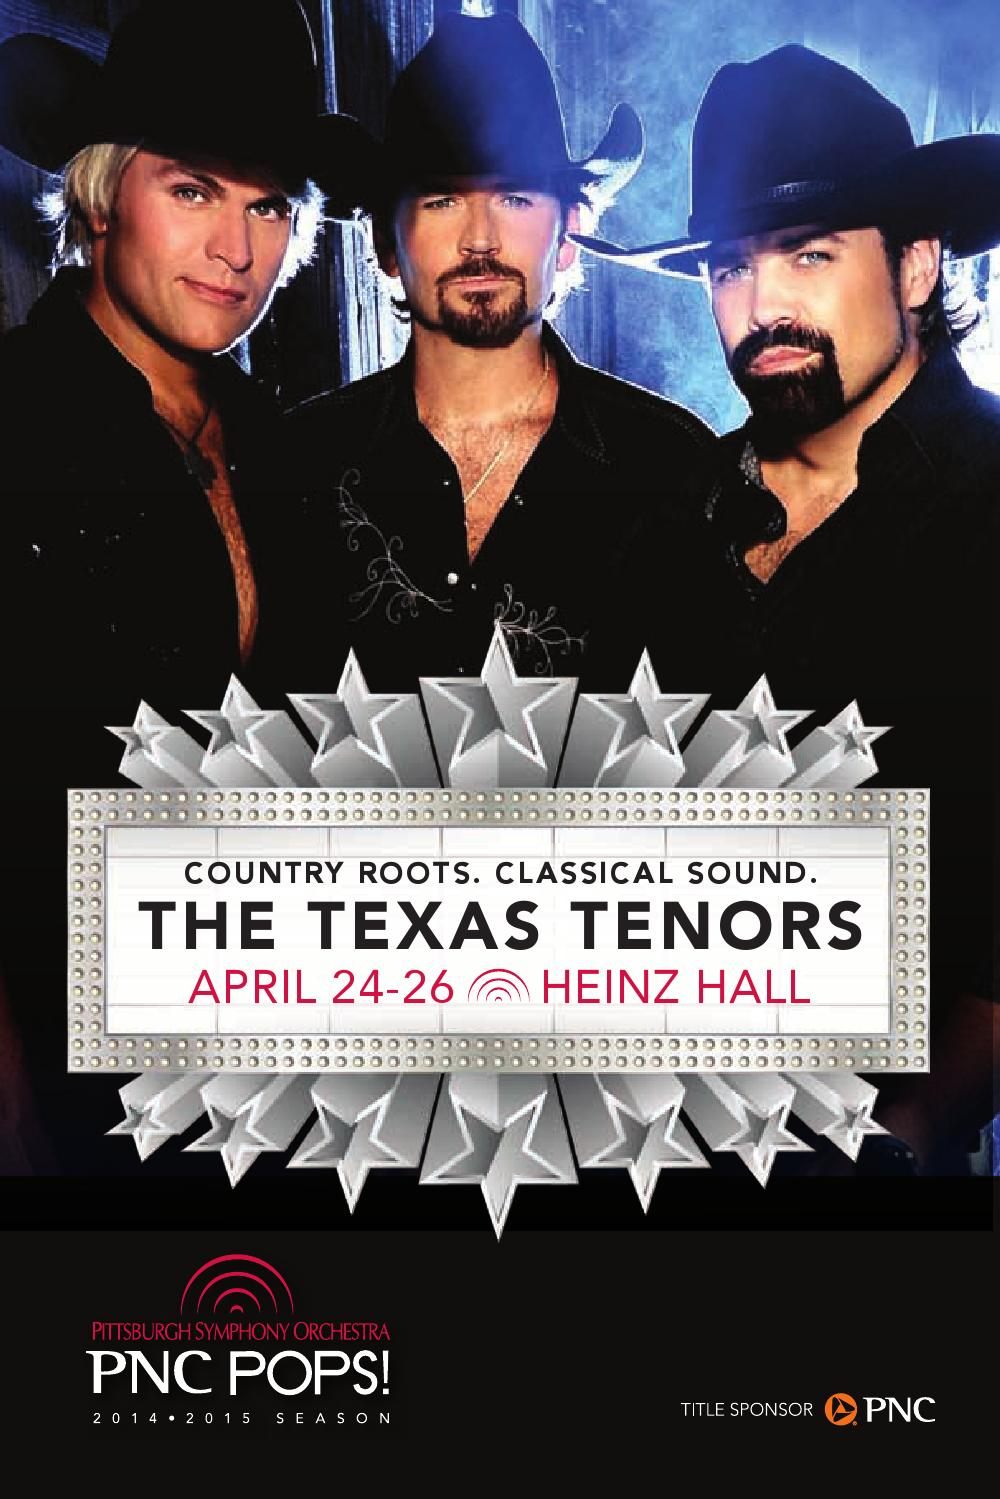 2014 2015 Pnc Pops The Texas Tenors By Pittsburgh Symphony Jason Zimba Wiring Diagram Interactive Orchestra Issuu